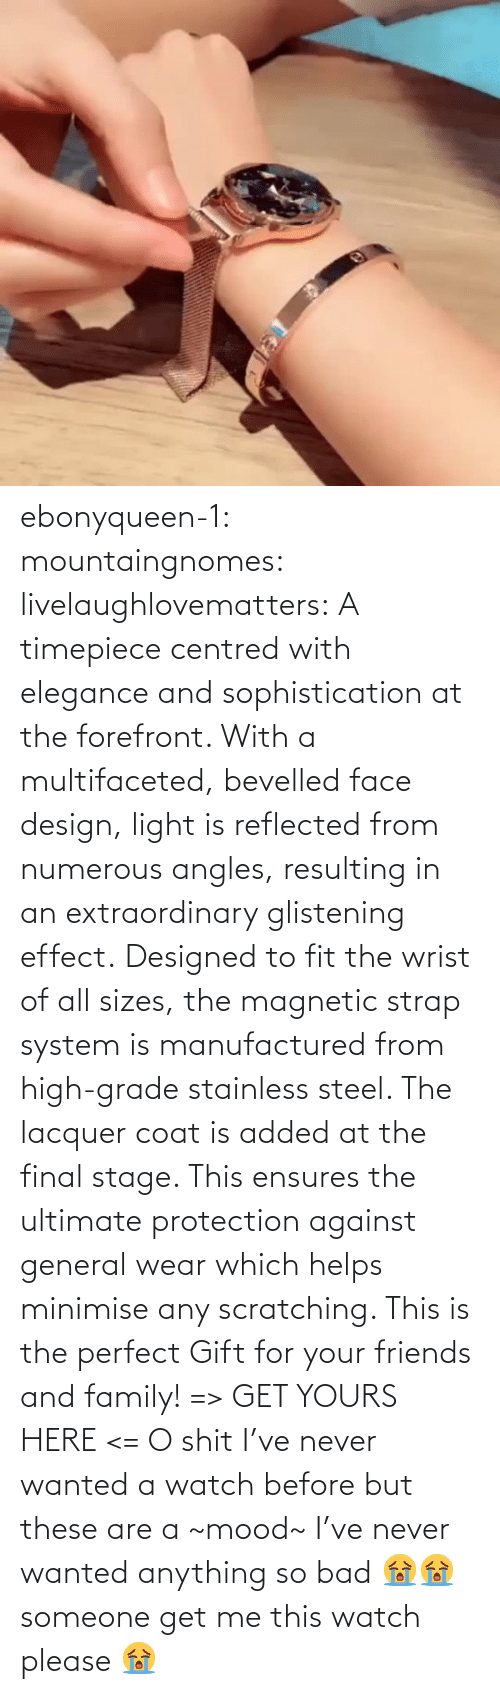 steel: ebonyqueen-1:  mountaingnomes:  livelaughlovematters:  A timepiece centred with elegance and sophistication at the forefront. With a multifaceted, bevelled face design, light is reflected from numerous angles, resulting in an extraordinary glistening effect. Designed to fit the wrist of all sizes, the magnetic strap system is manufactured from high-grade stainless steel. The lacquer coat is added at the final stage. This ensures the ultimate protection against general wear which helps minimise any scratching. This is the perfect Gift for your friends and family! => GET YOURS HERE <=  O shit I've never wanted a watch before but these are a ~mood~  I've never wanted anything so bad 😭😭 someone get me this watch please 😭